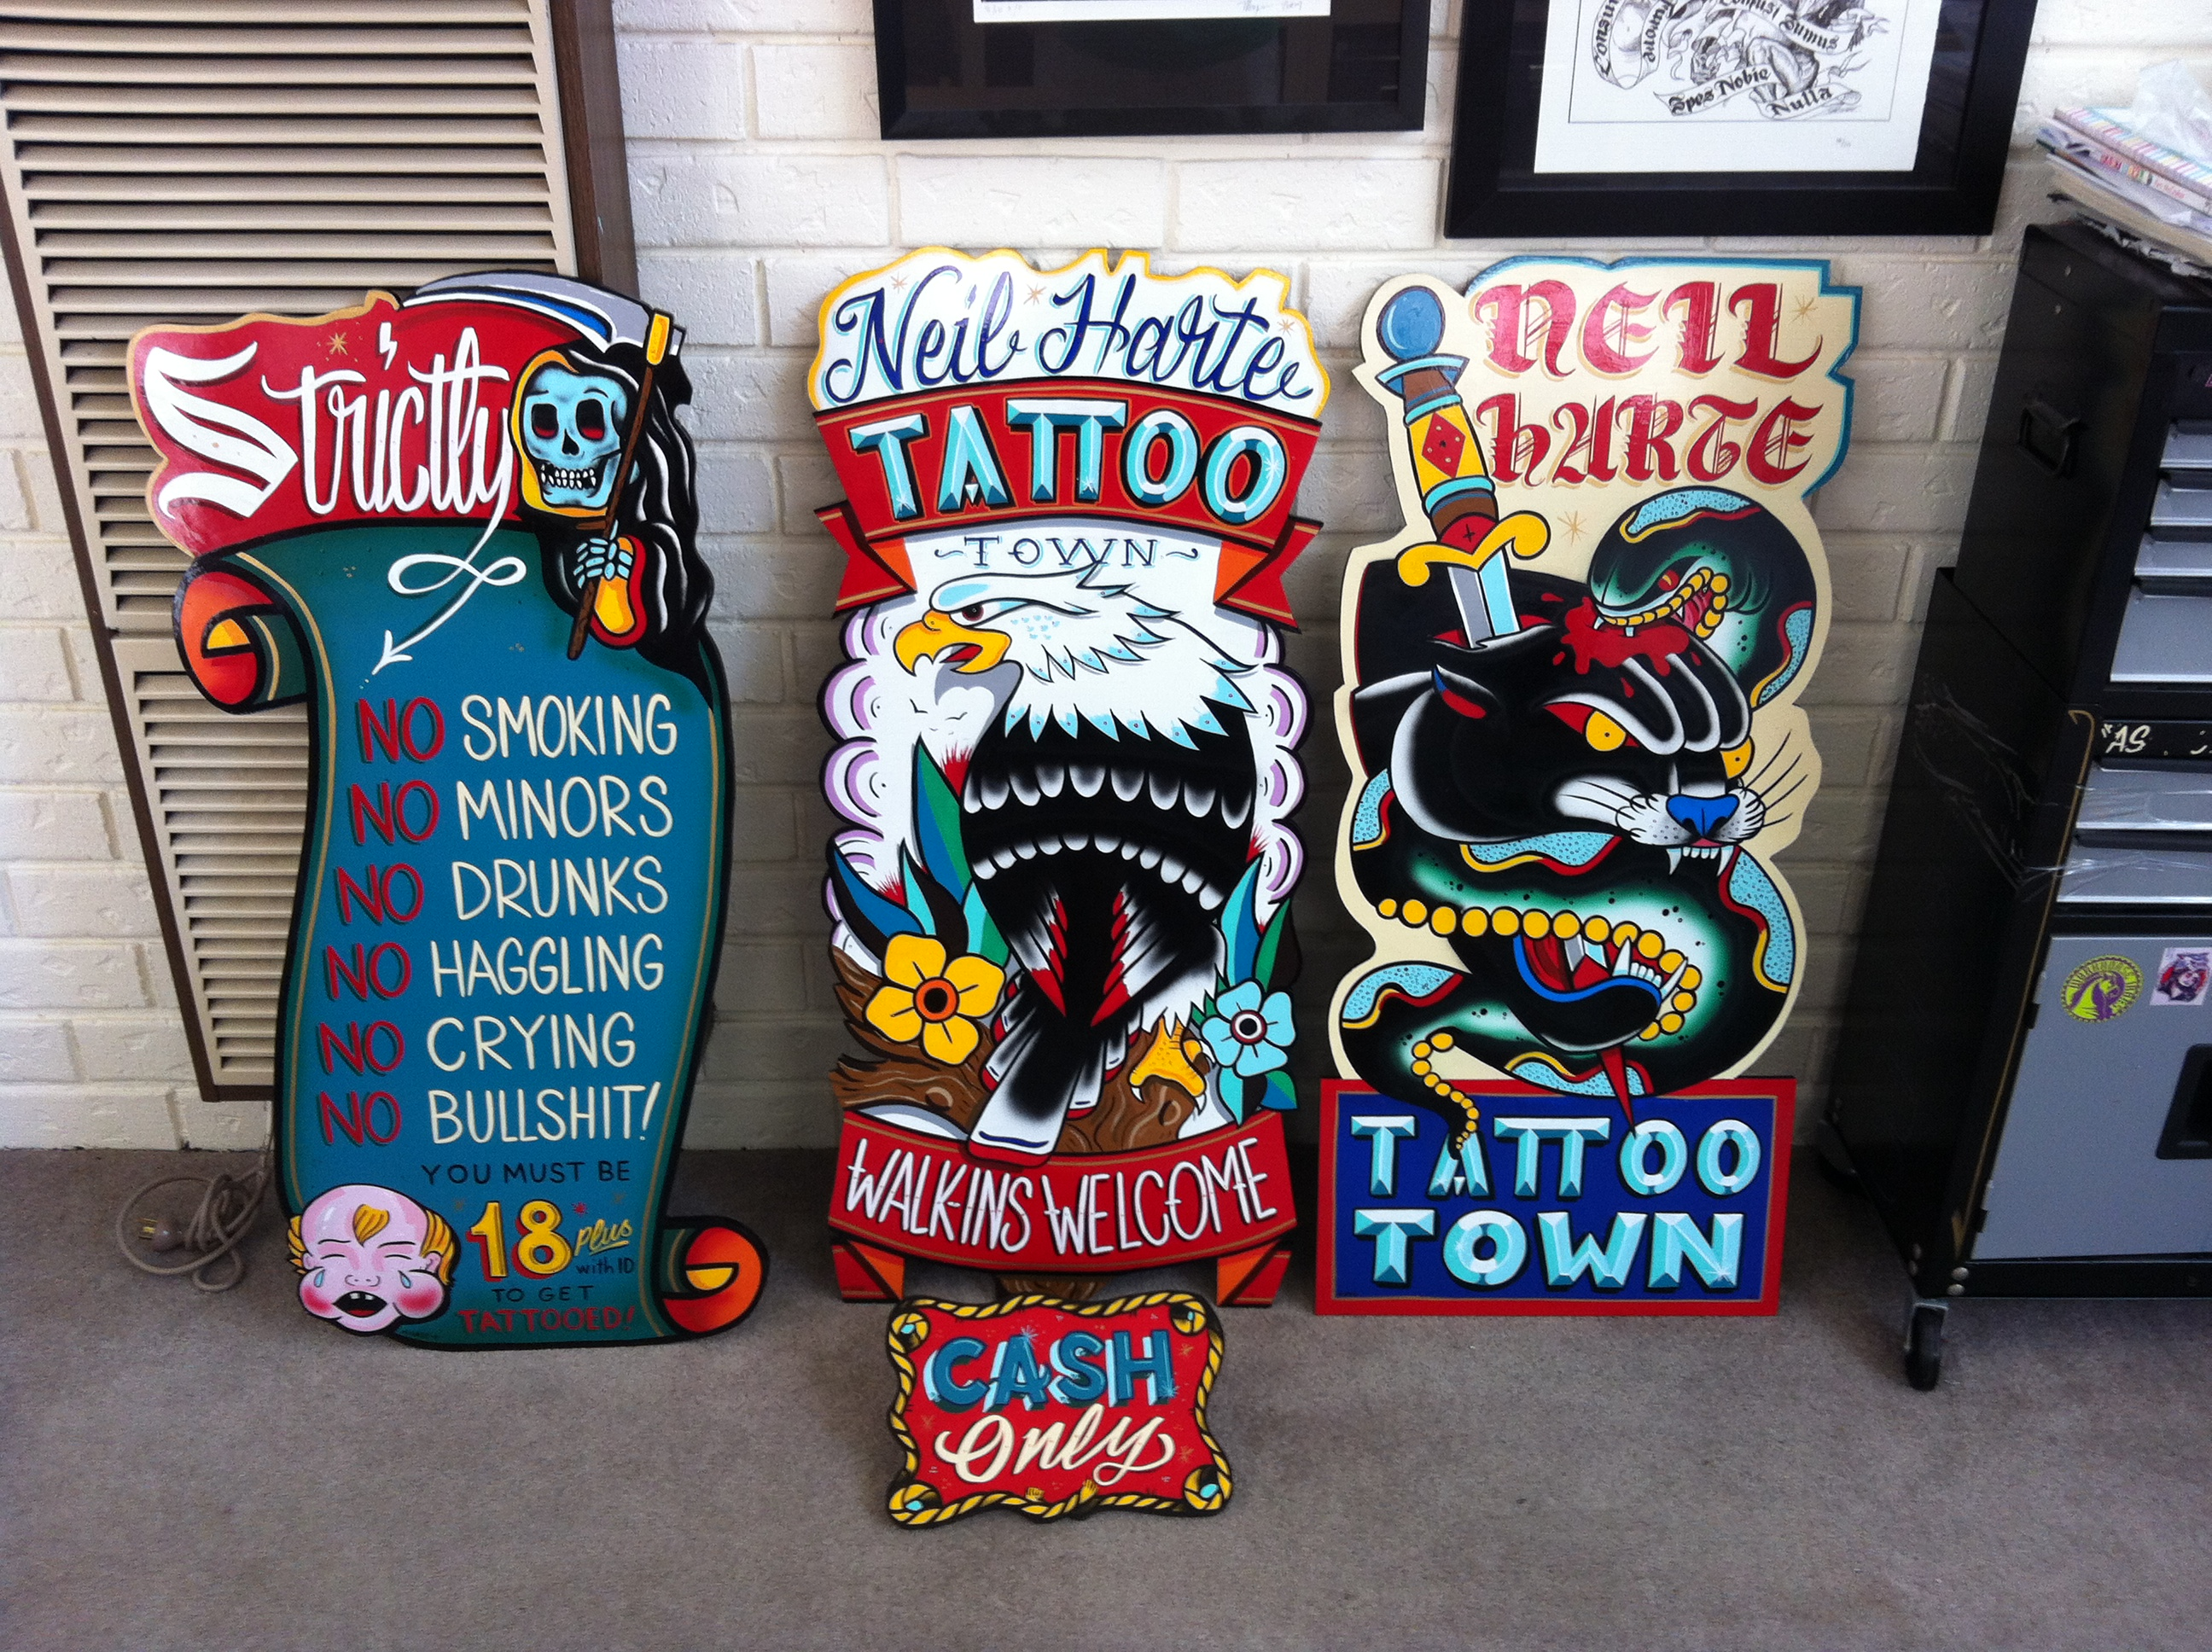 Tattoo shop signs for neil harte dublin ireland nathan hass for Tattoo shops dublin